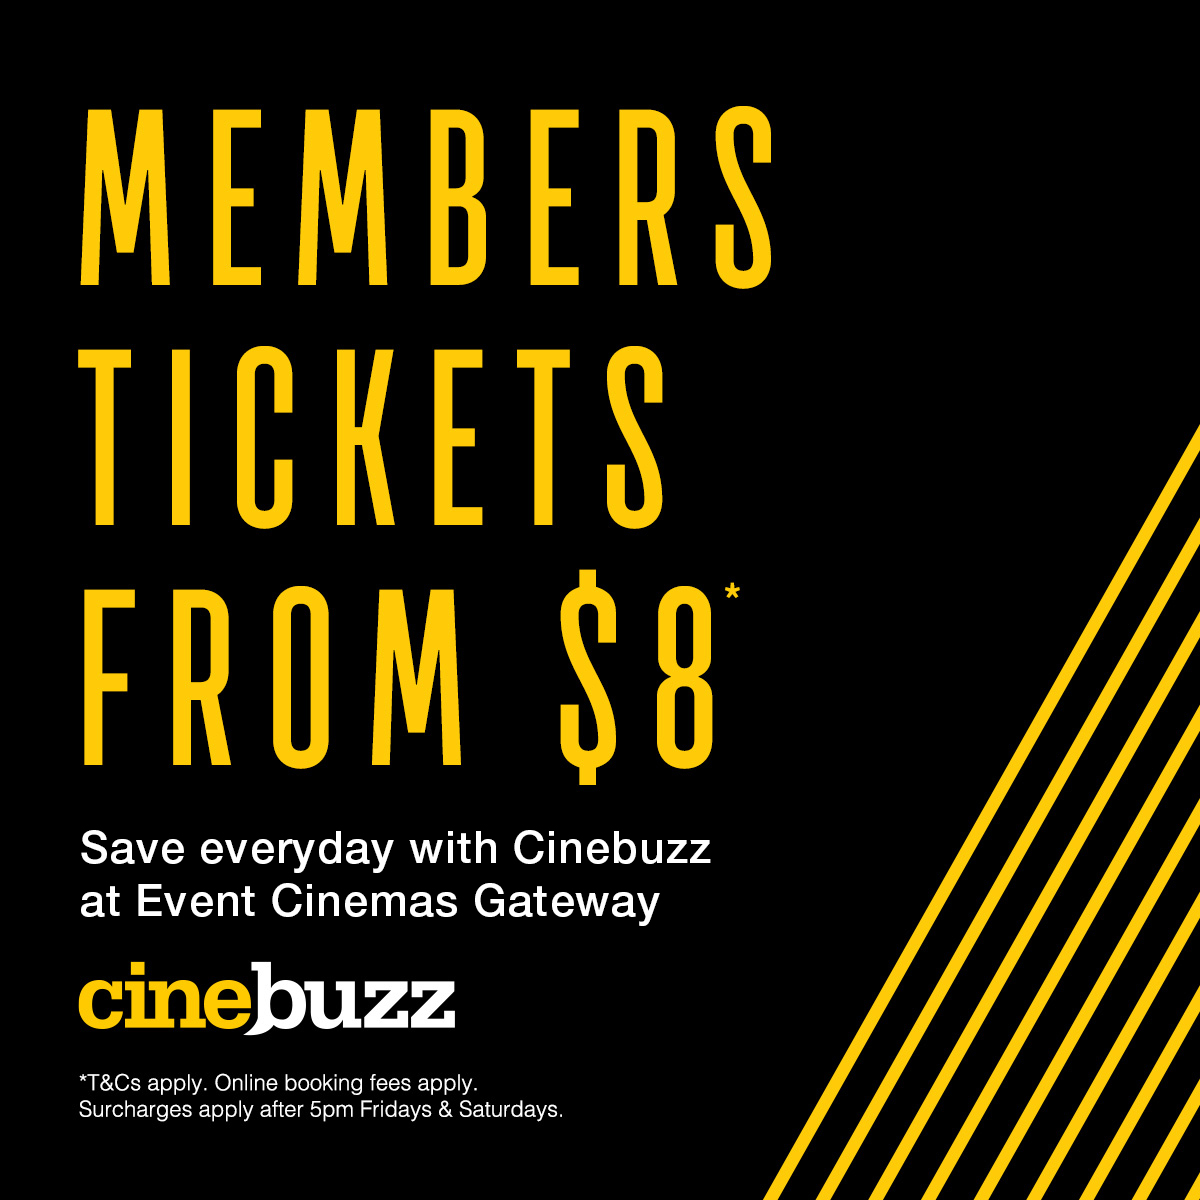 Cinebuzz Tickets from $8 at Event Cinemas